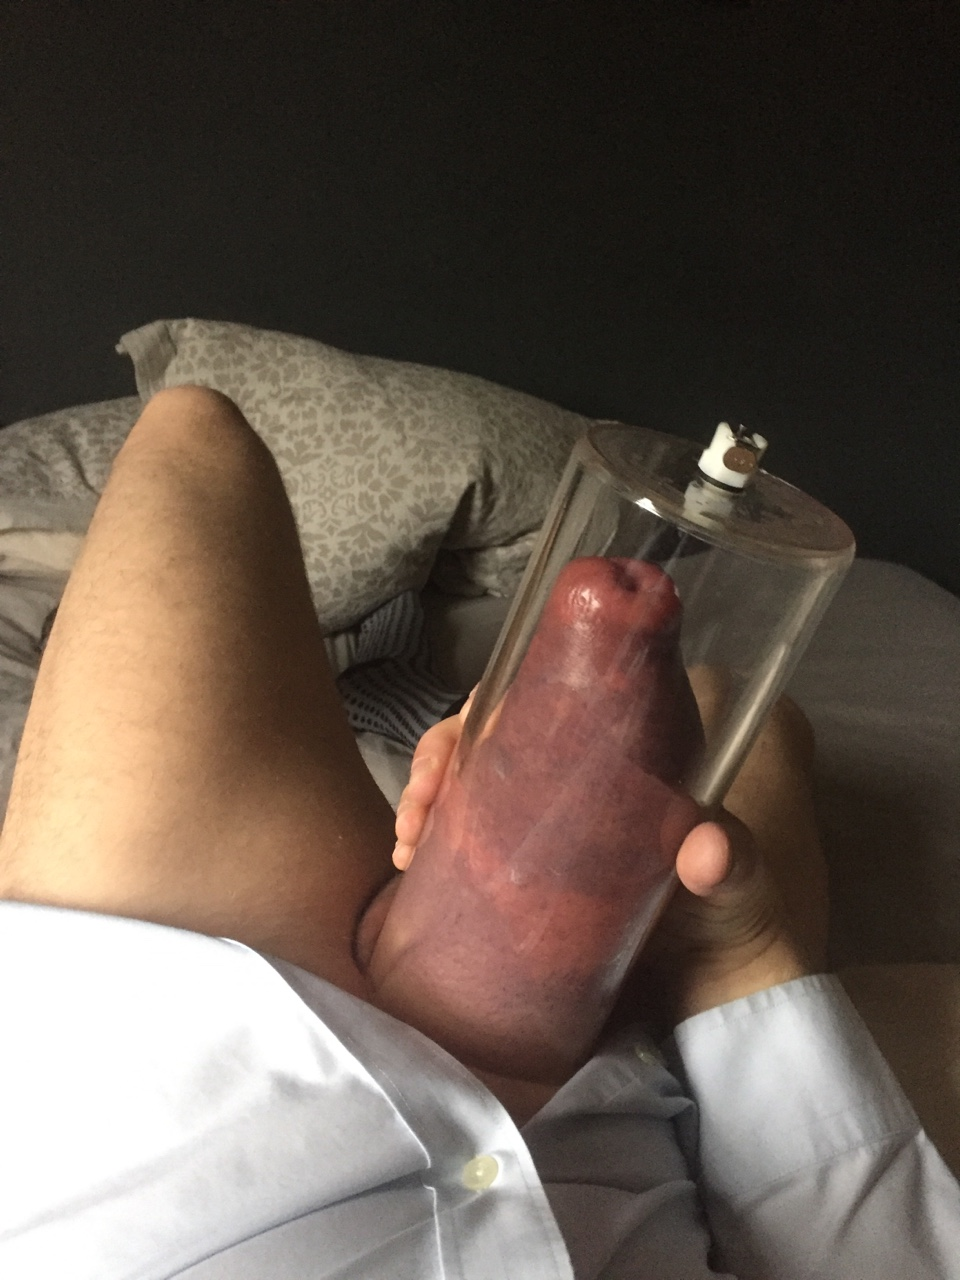 Penis pumping silicon